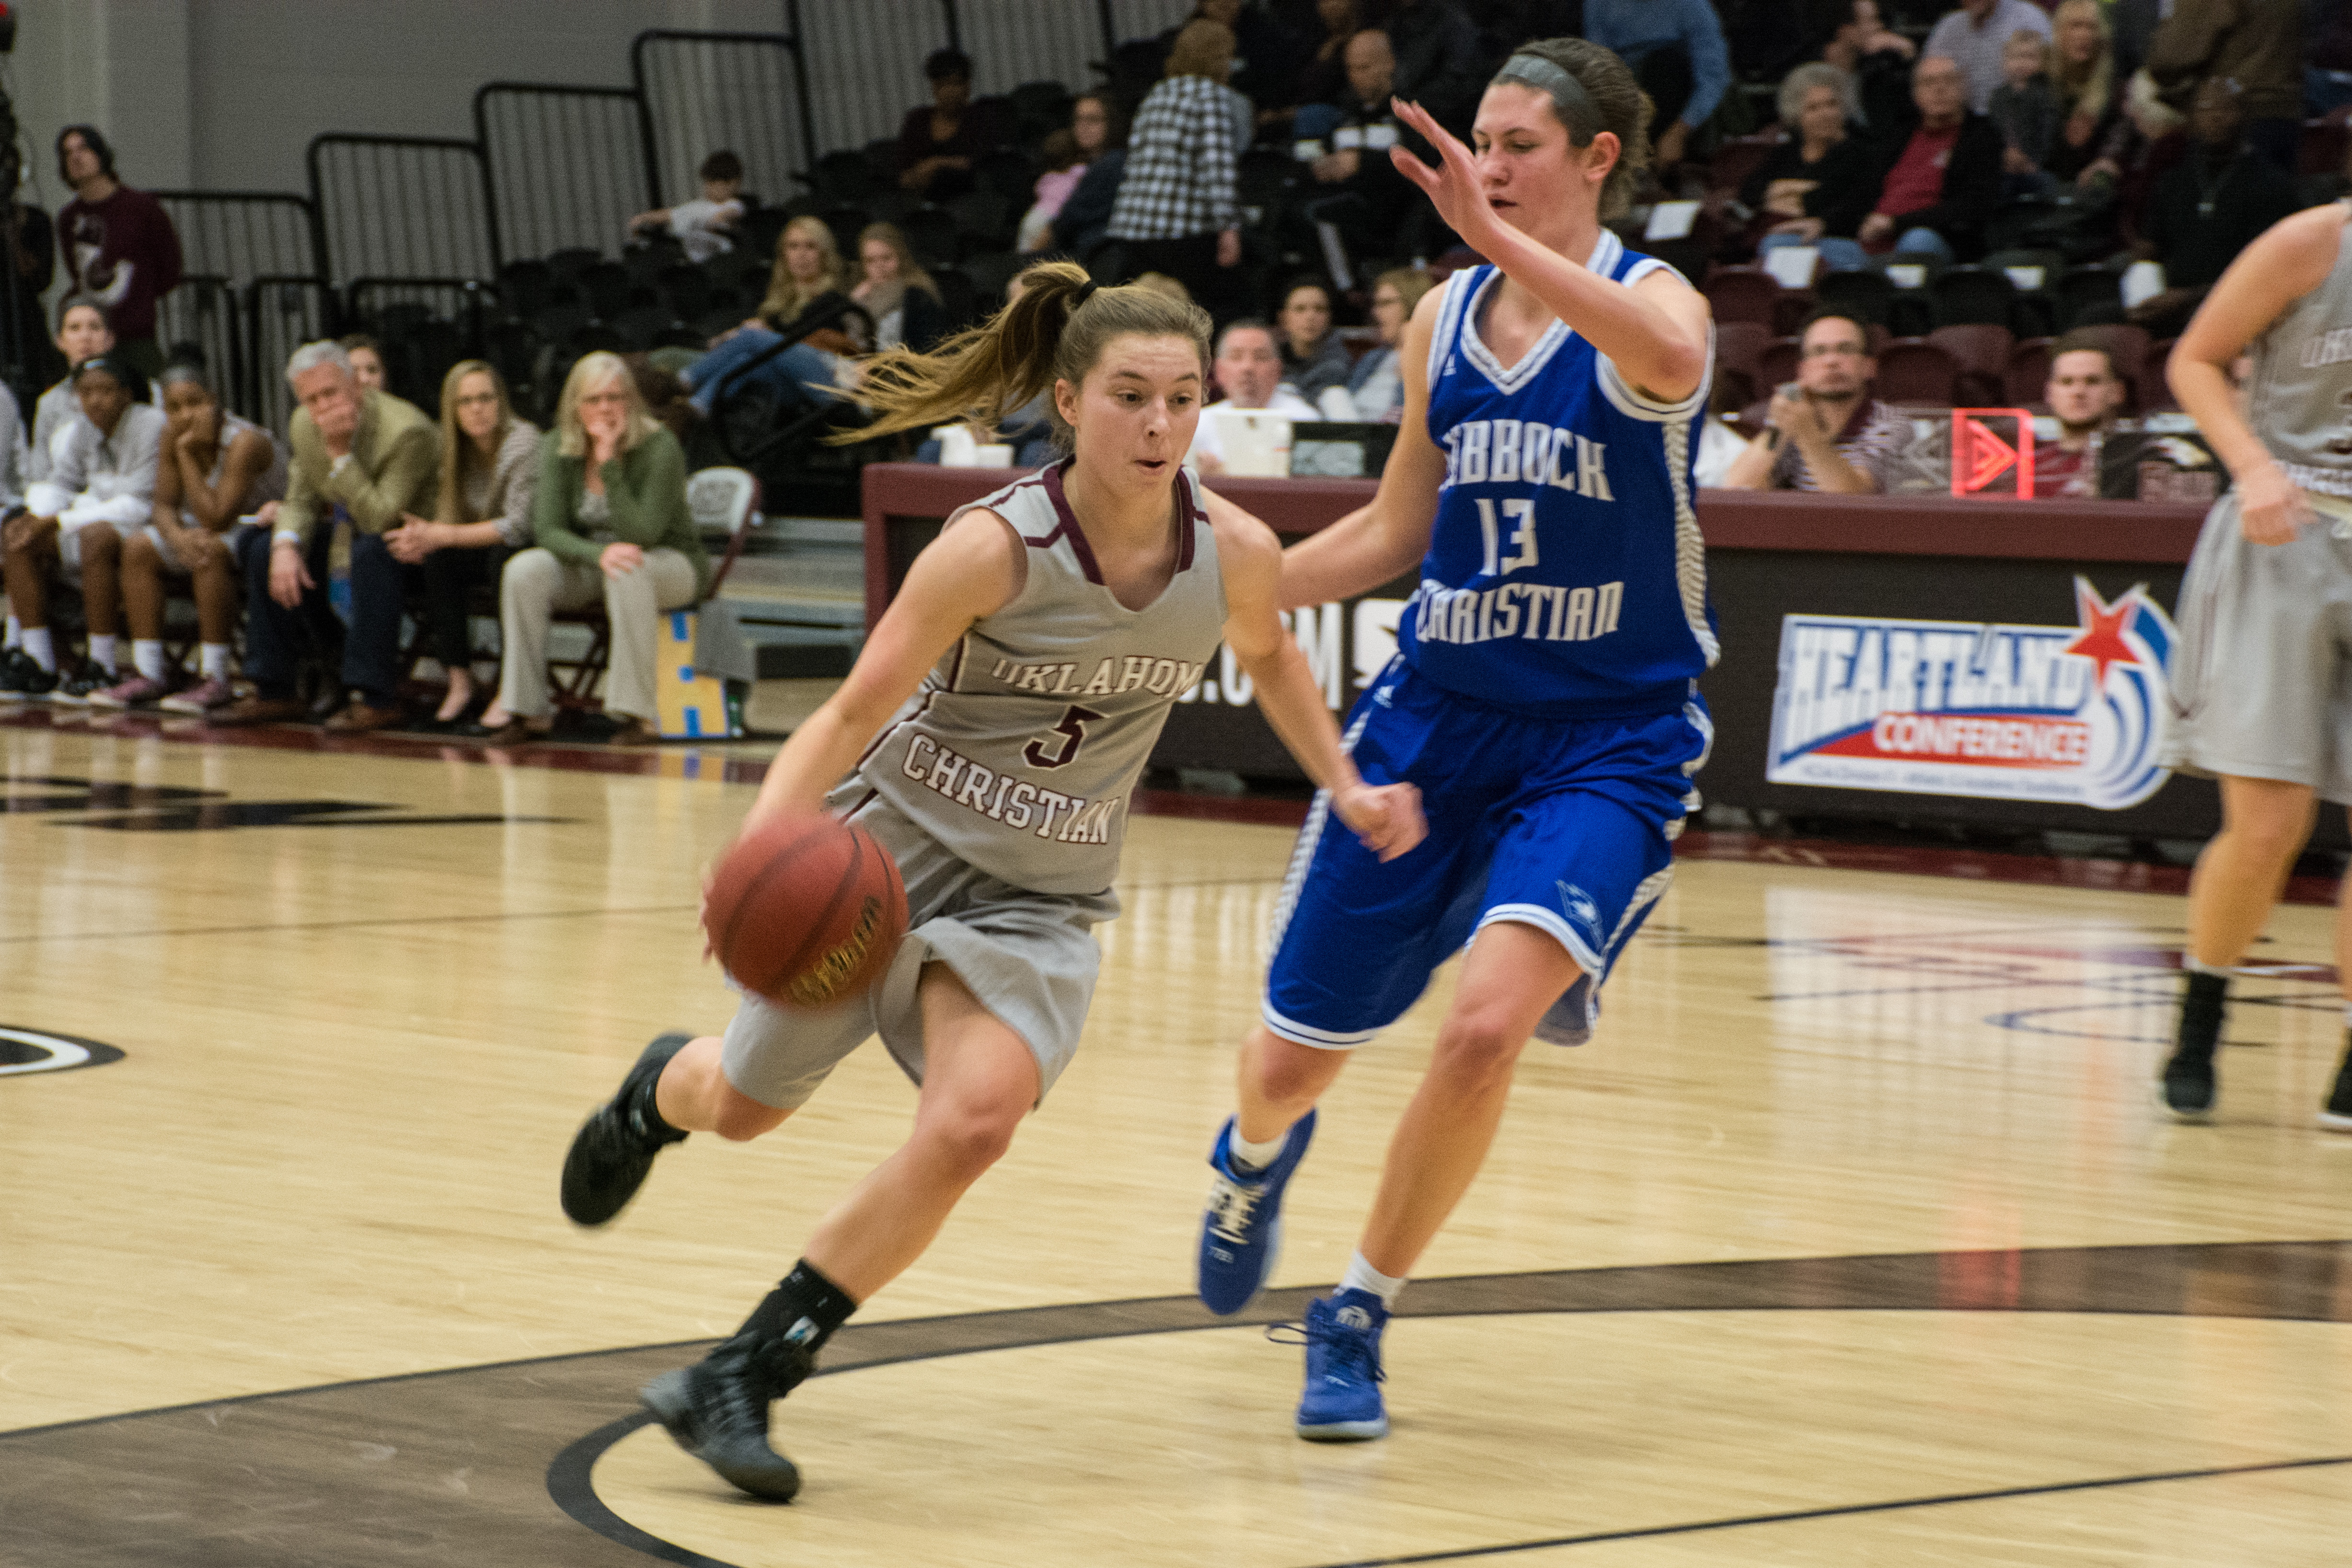 Addy Clift and the Oklahoma Christian Lady Eagles return to open play this week. Photo by Abby Bellow.